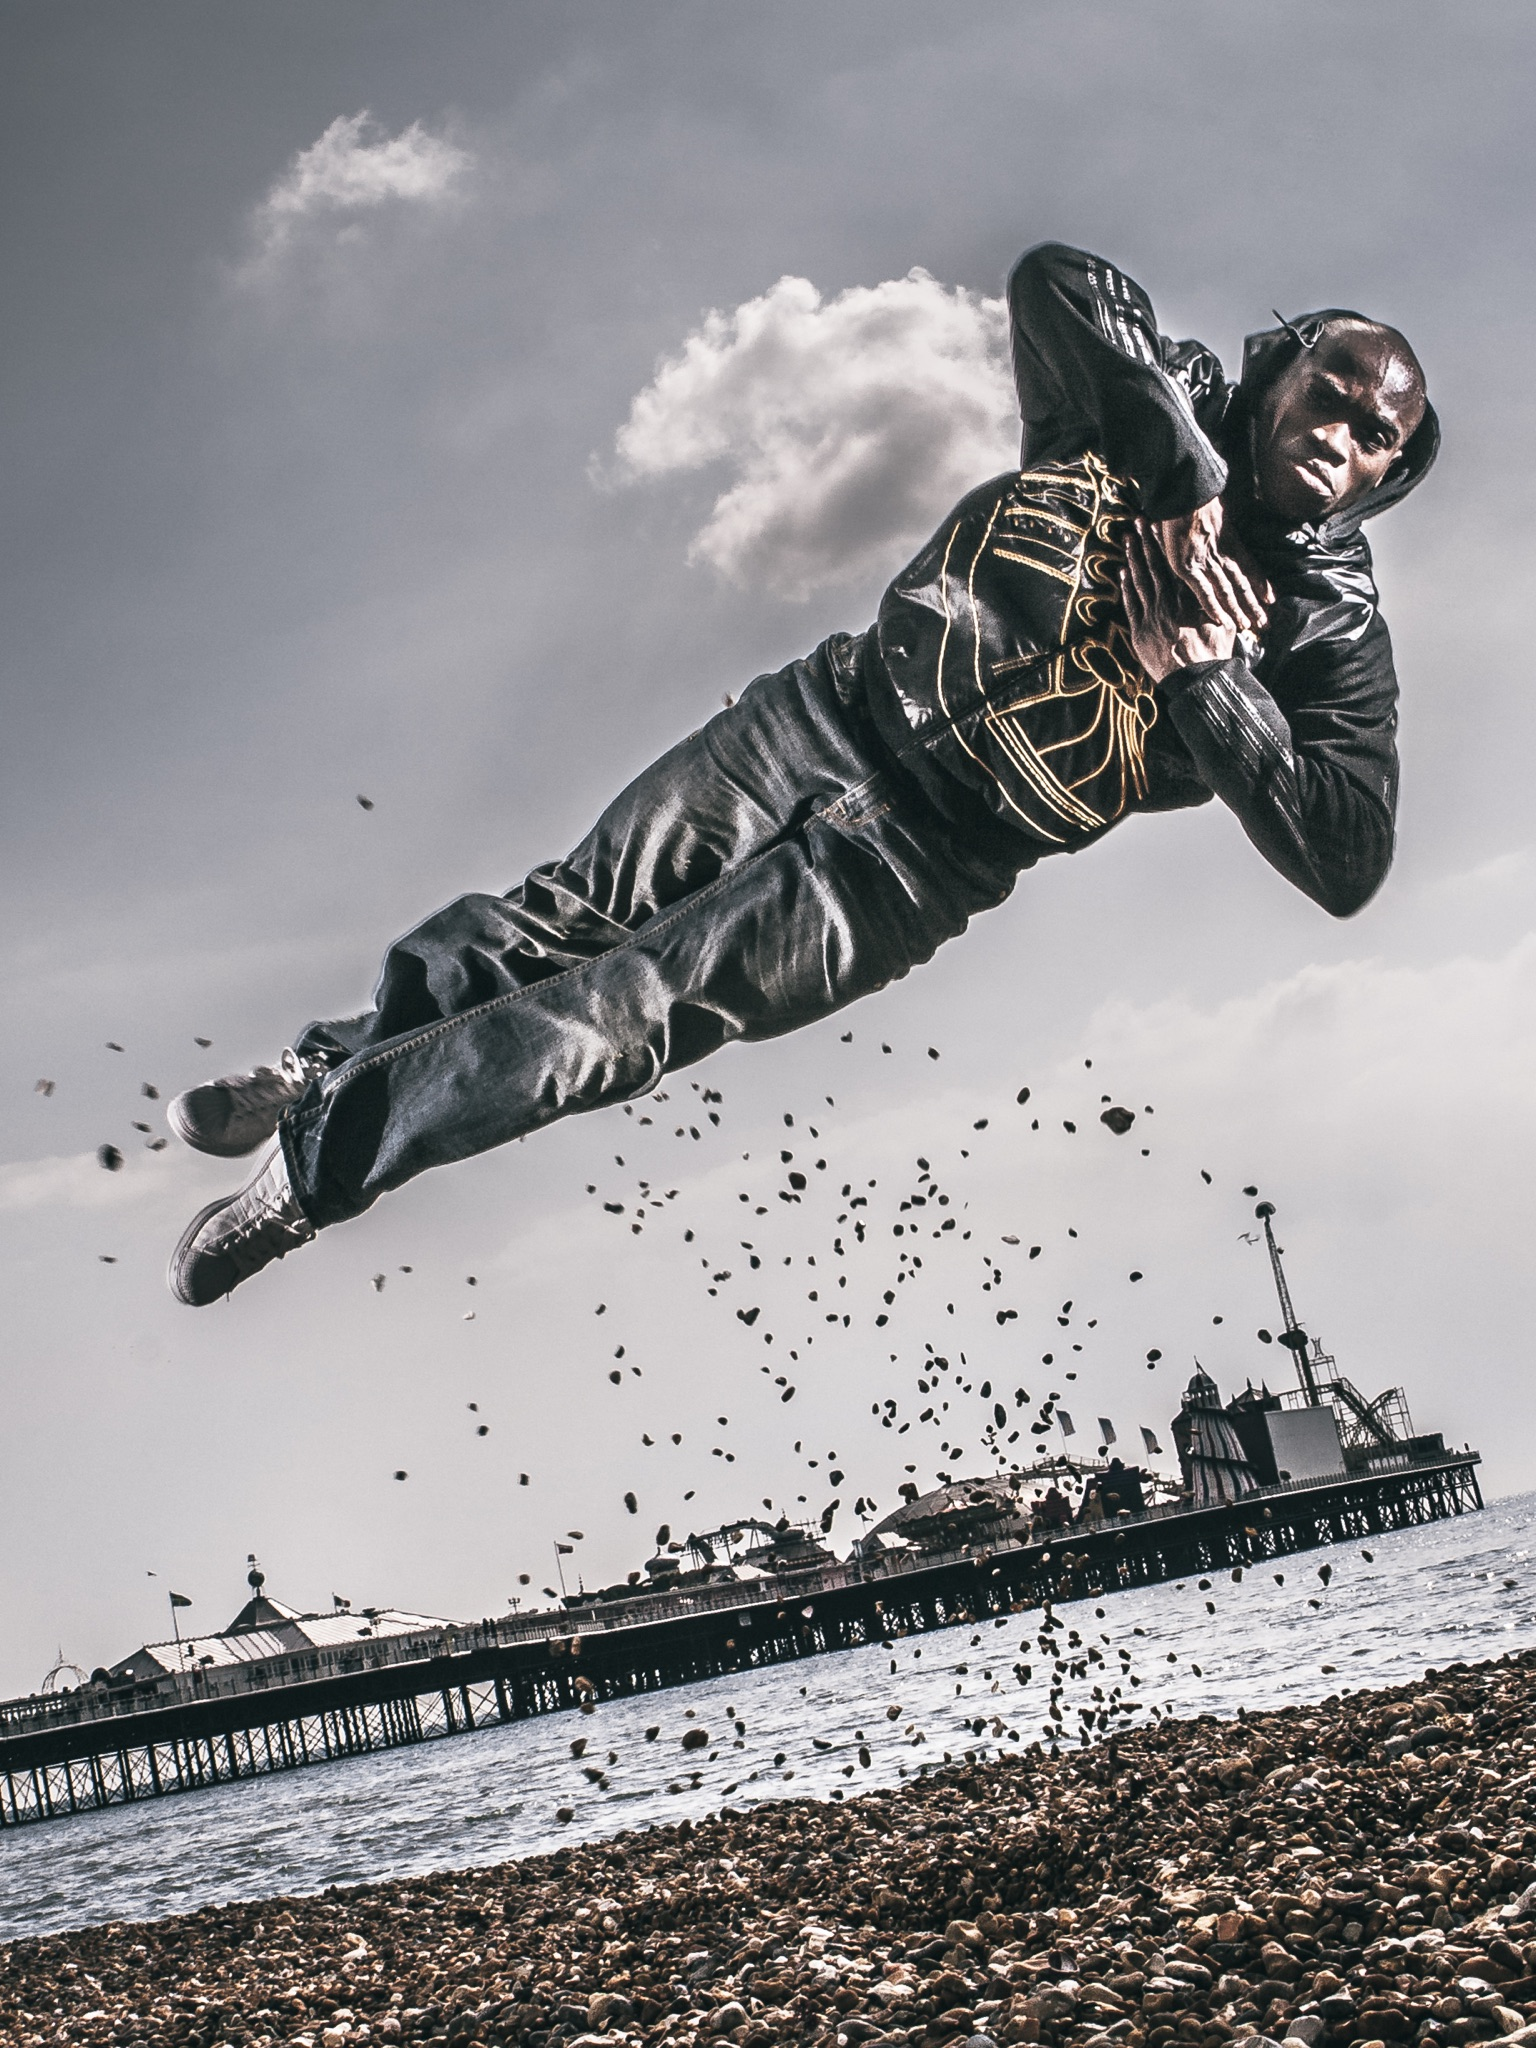 JP Omari Brighton Pier Photography Jumping Breakdancer Breakdance Jump Stones Award Winning Photo